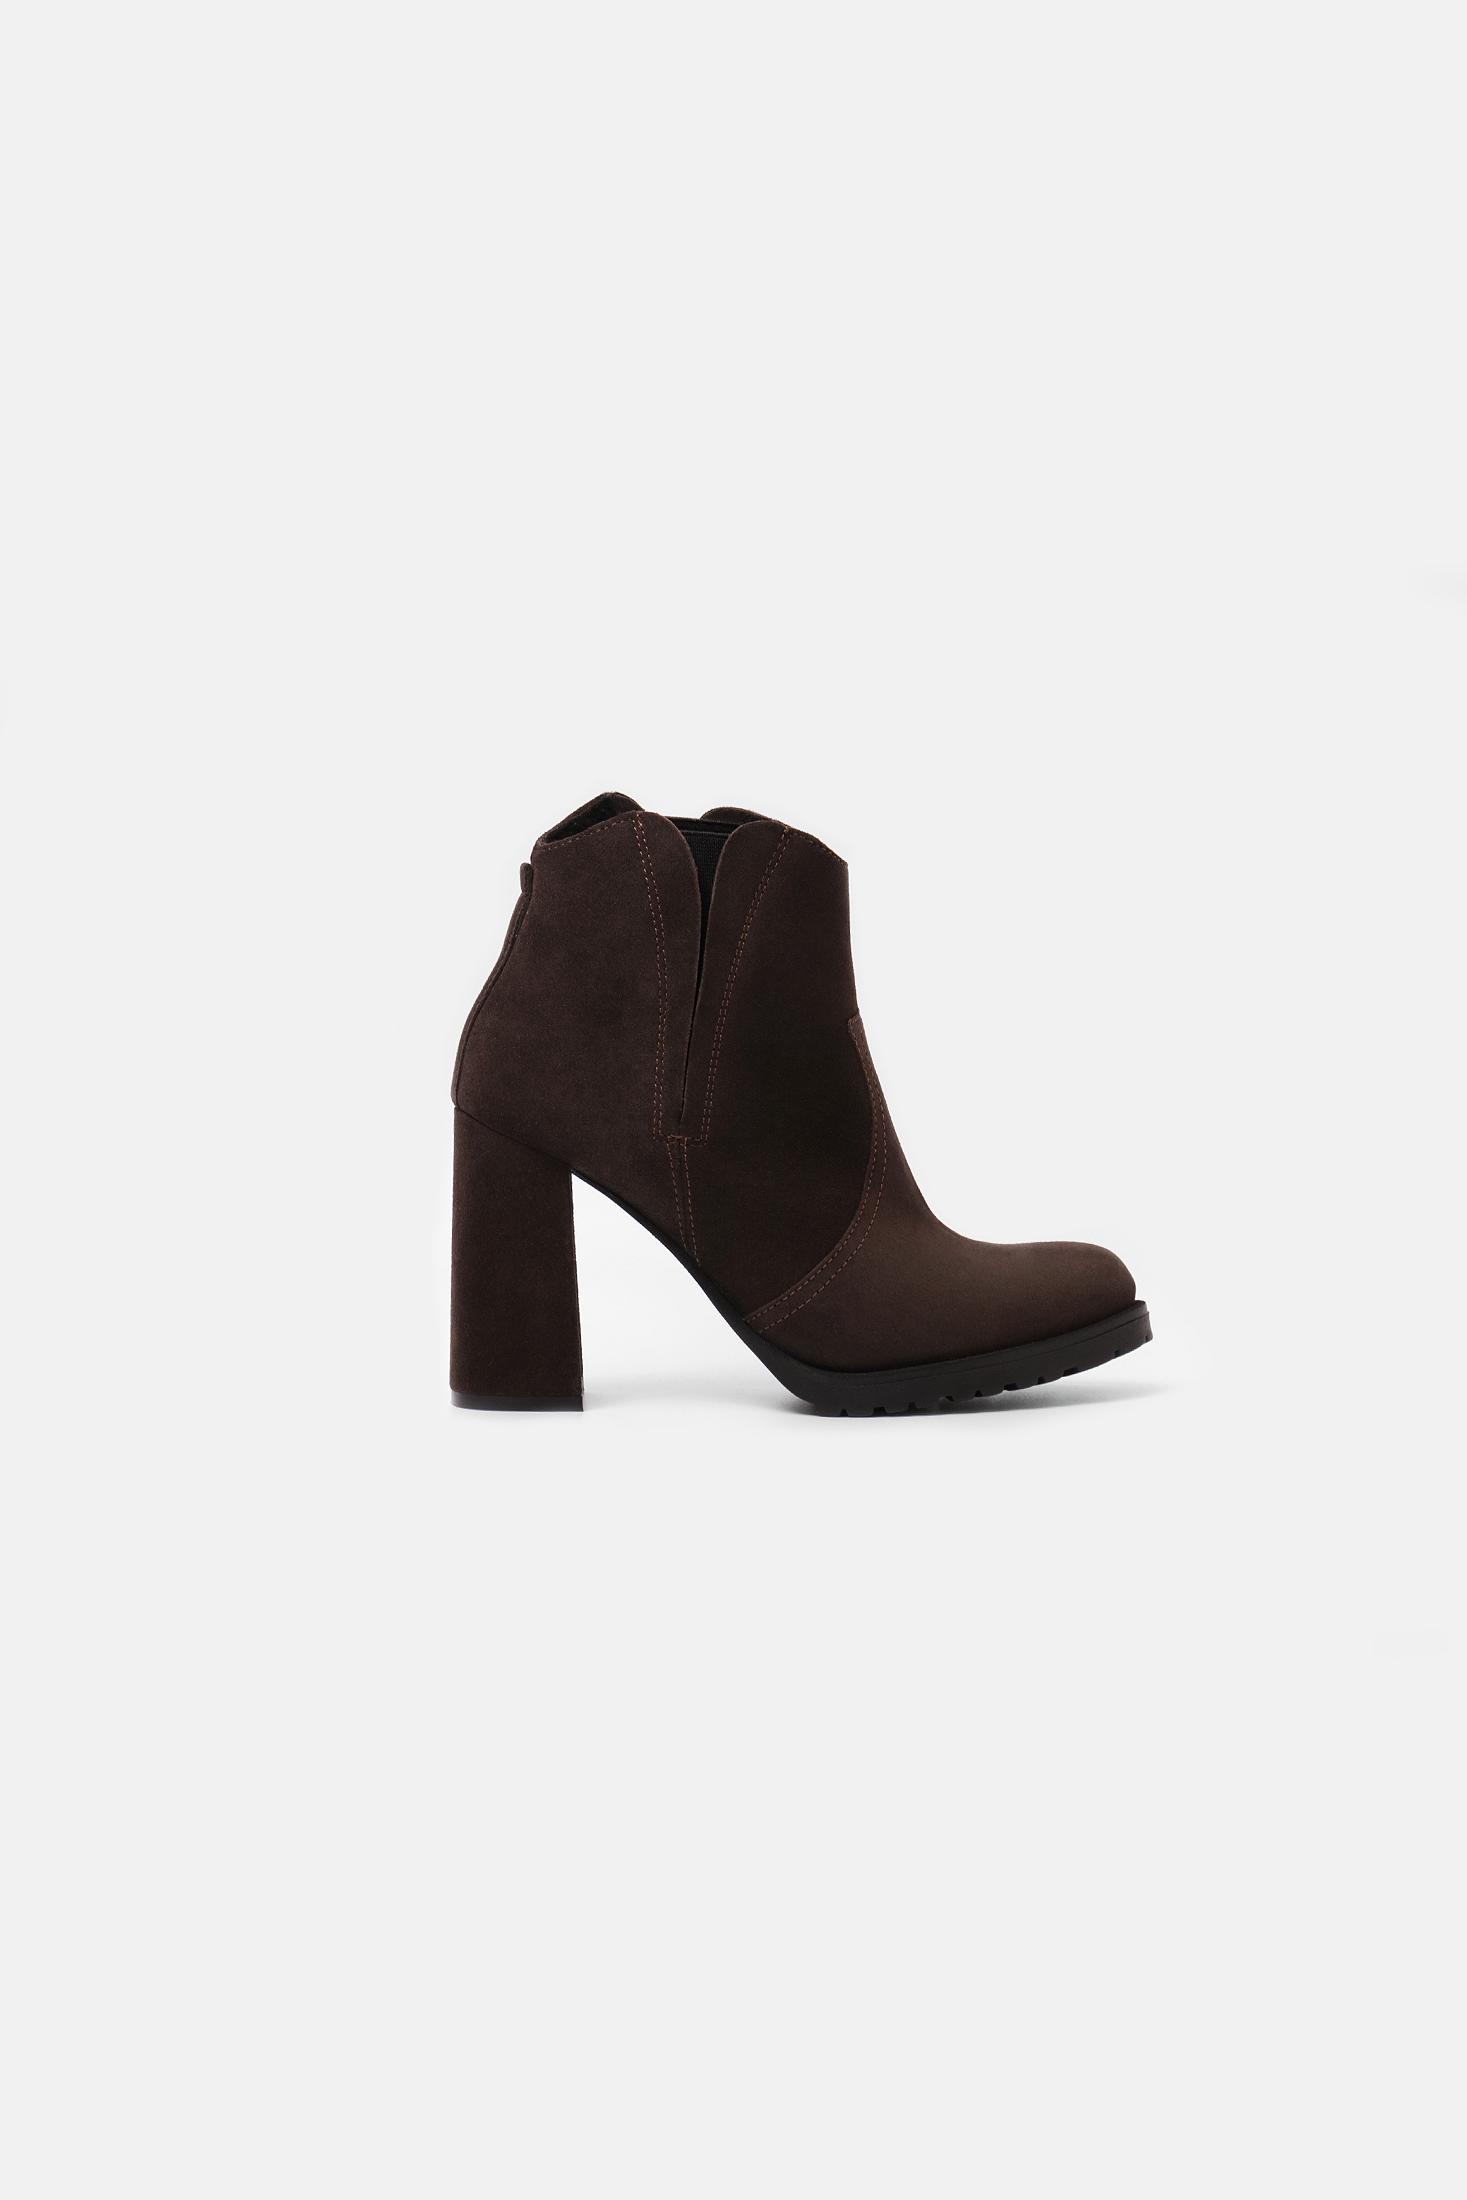 SUEDE ANKLE HIGH-HEELED BOOTS COCOA